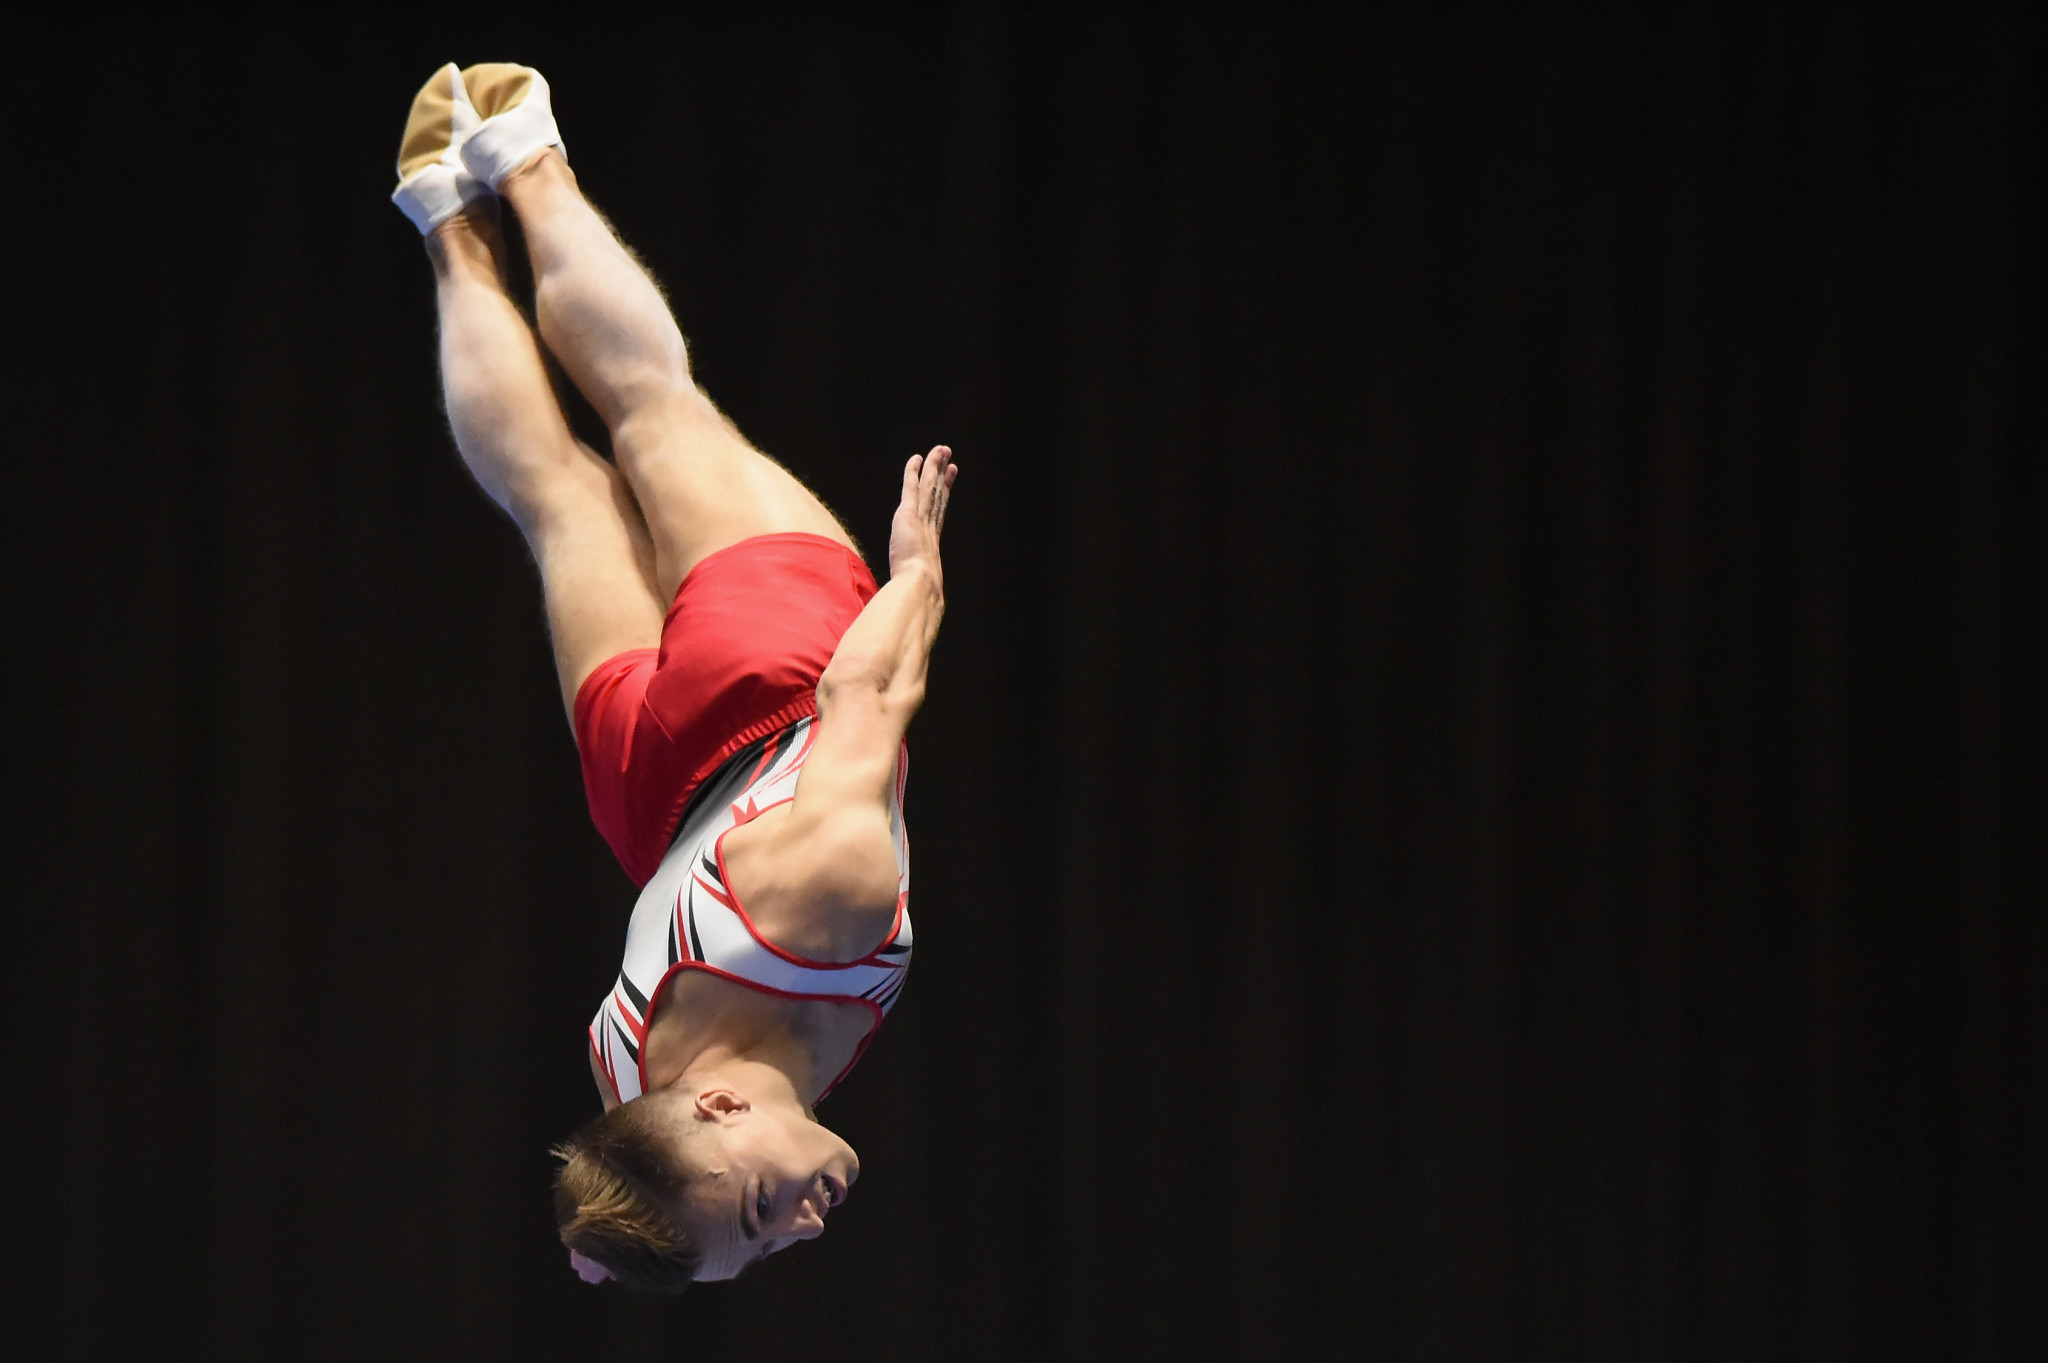 Olympic champion Hancharou triumphs at FIG Trampoline World Cup in Baku